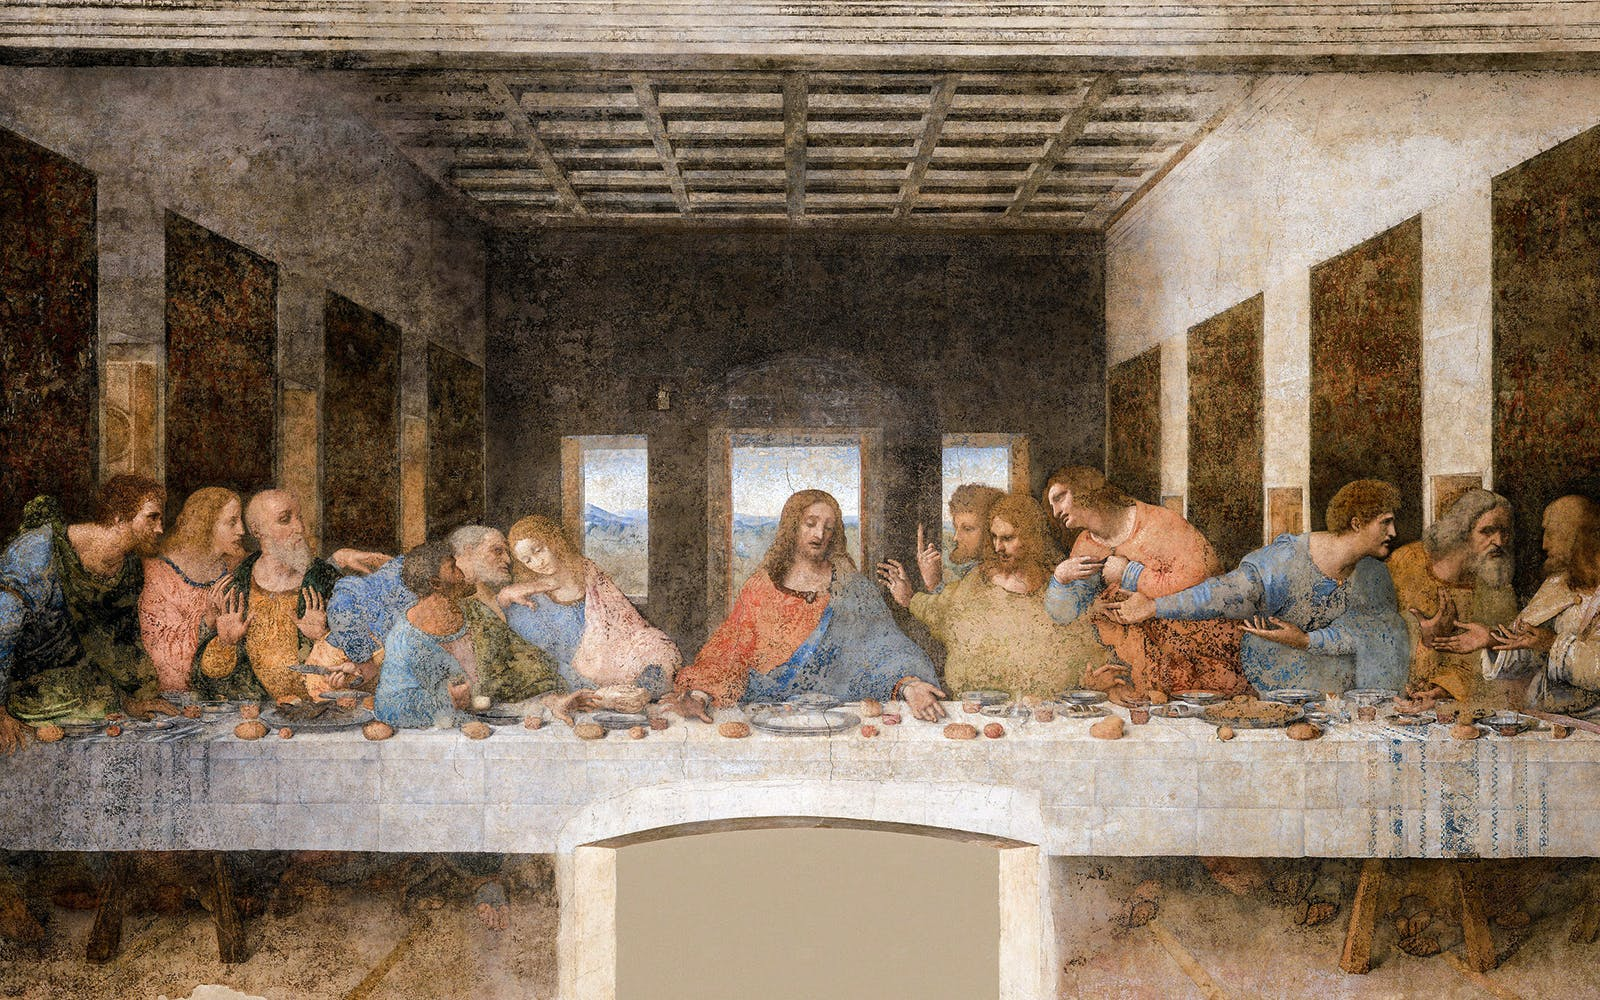 Skip The Line Tickets to Da Vinci's Last Supper With Guide